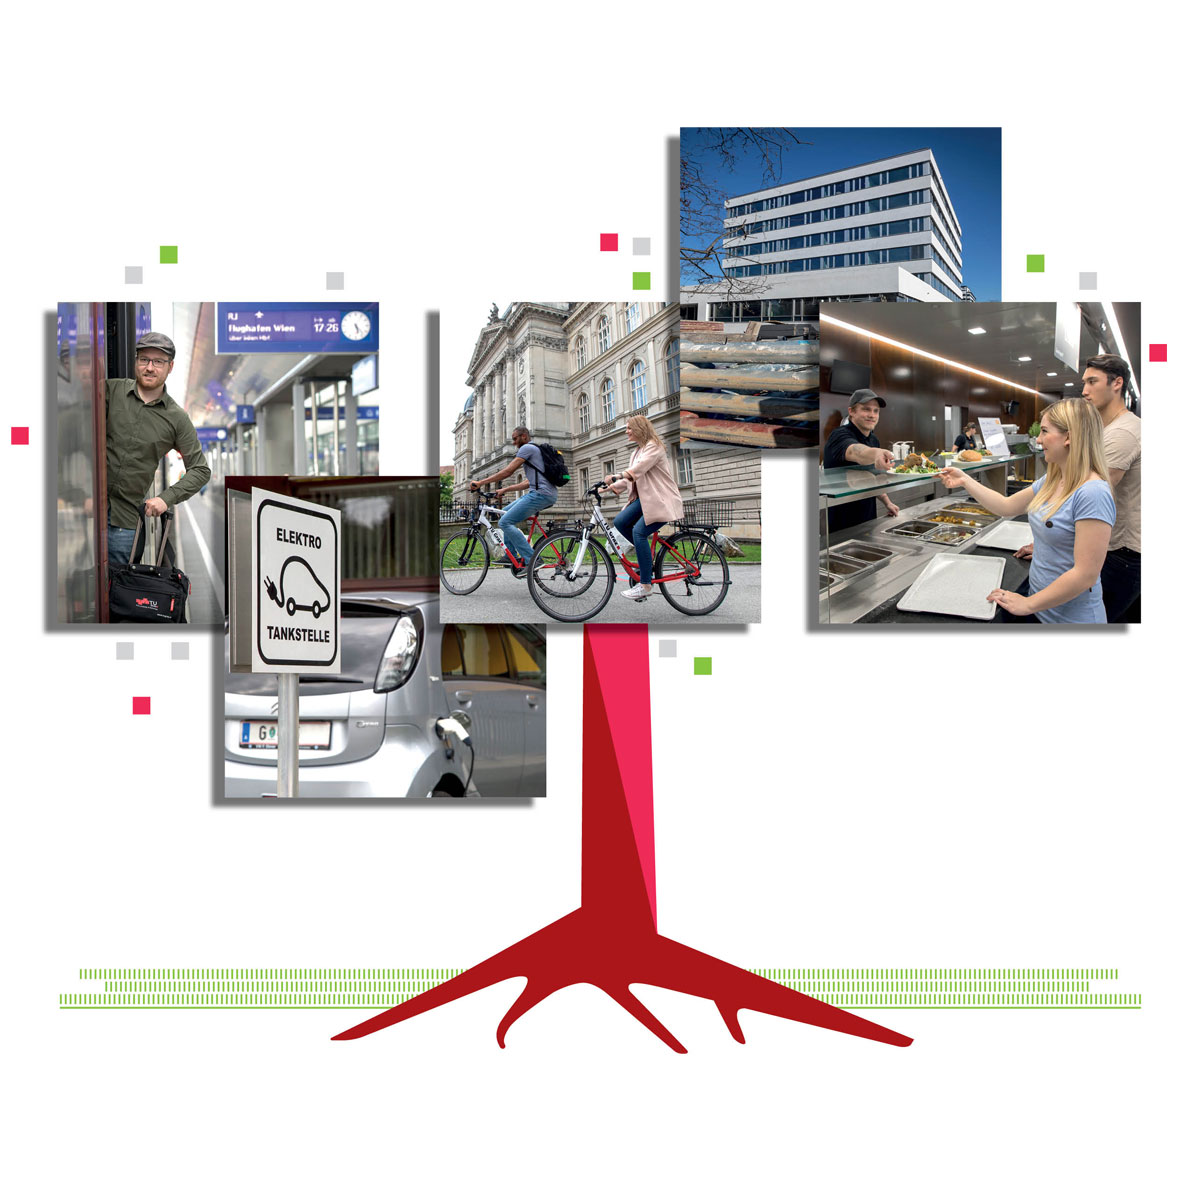 A red tree trunk illustration. Five photos are depicted as the treetop, forming the TU Graz logo. One picture shows a man on a train, the second an electric car, the third shows two people on bicycles, the fourth shows a building and the fifth a canteen.